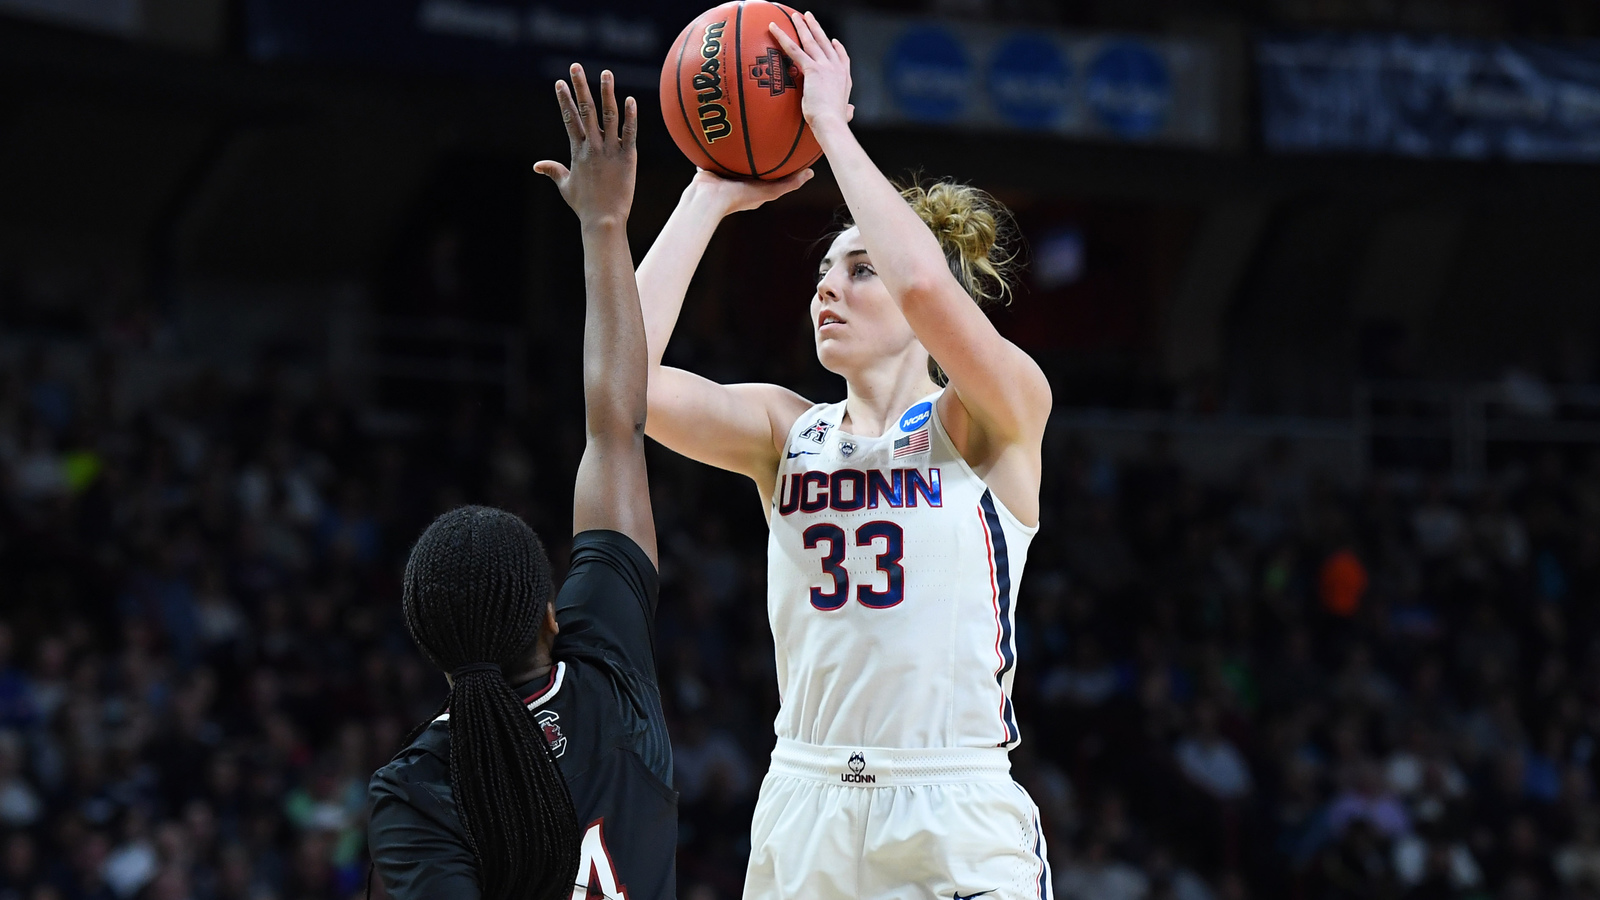 Mississippi State wins in overtime, advances to NCAA women's championship